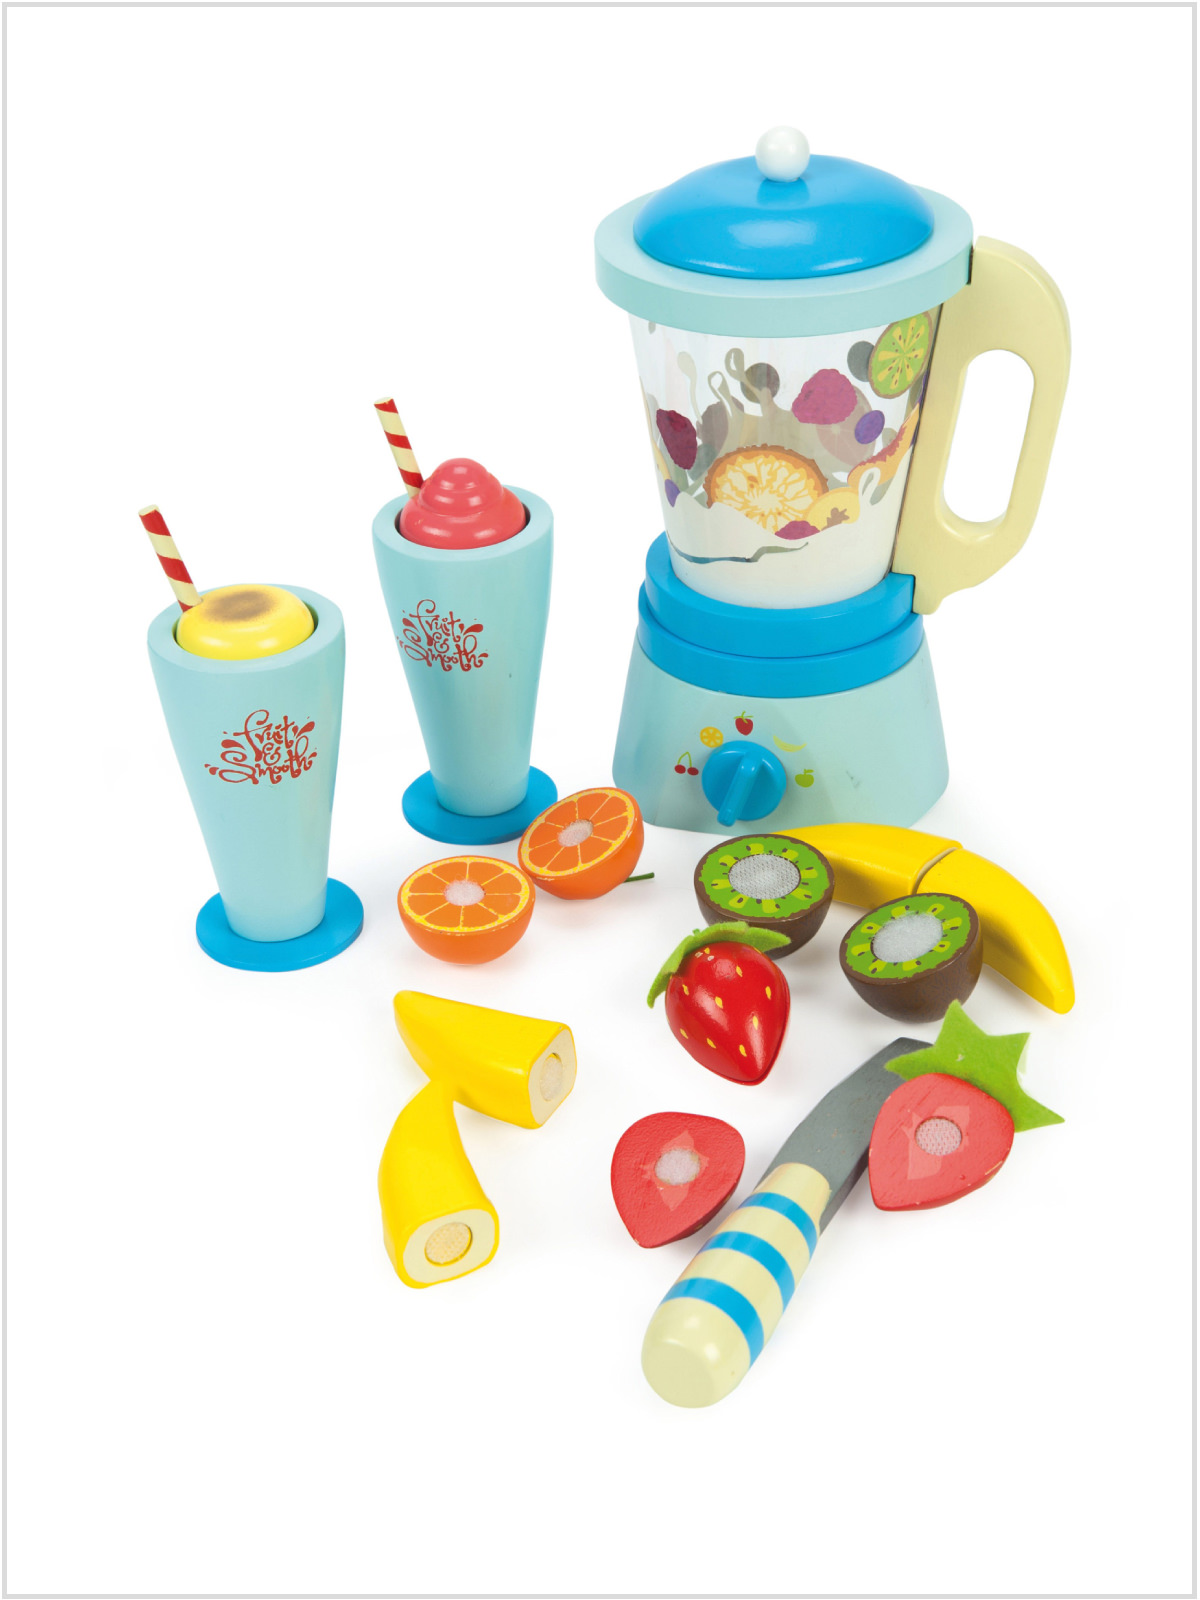 frederickandsophie-toys-letoyvan-honeybake-play-wooden-blender-fruit